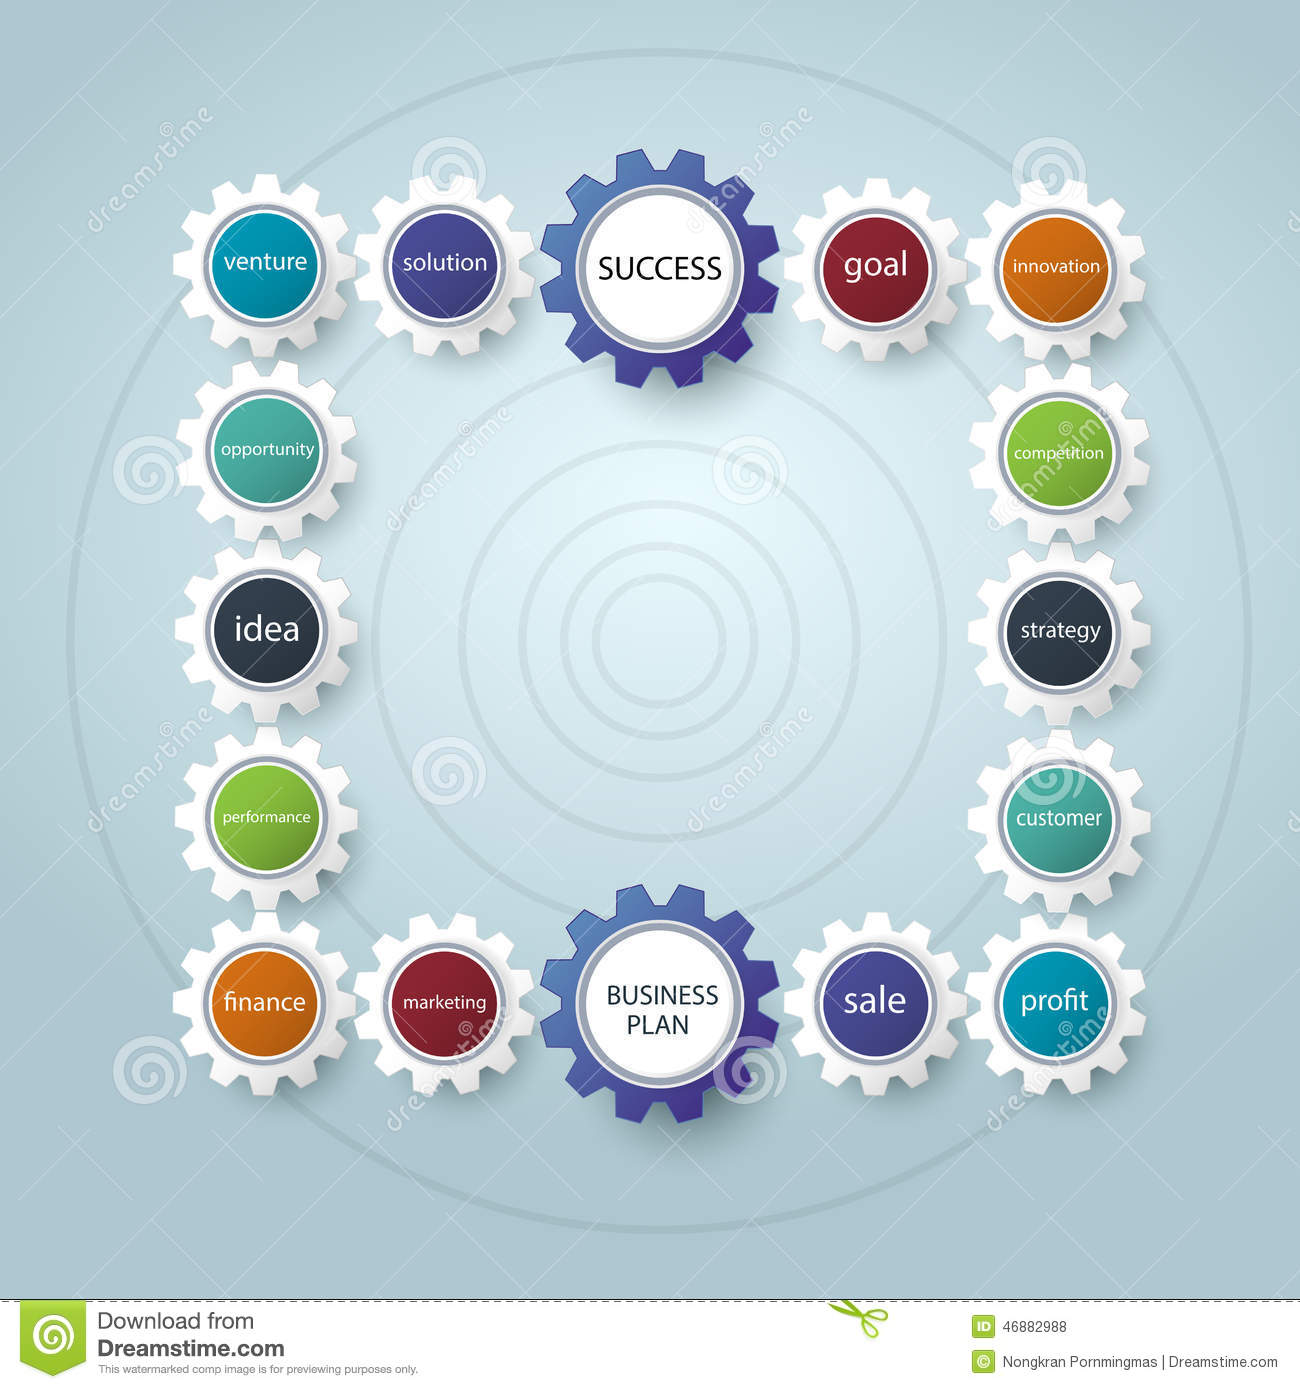 gear 2 marketing plan 2 create a content marketing strategy in addition to your sales and promotions,  you'll need to think about your content marketing and build it.